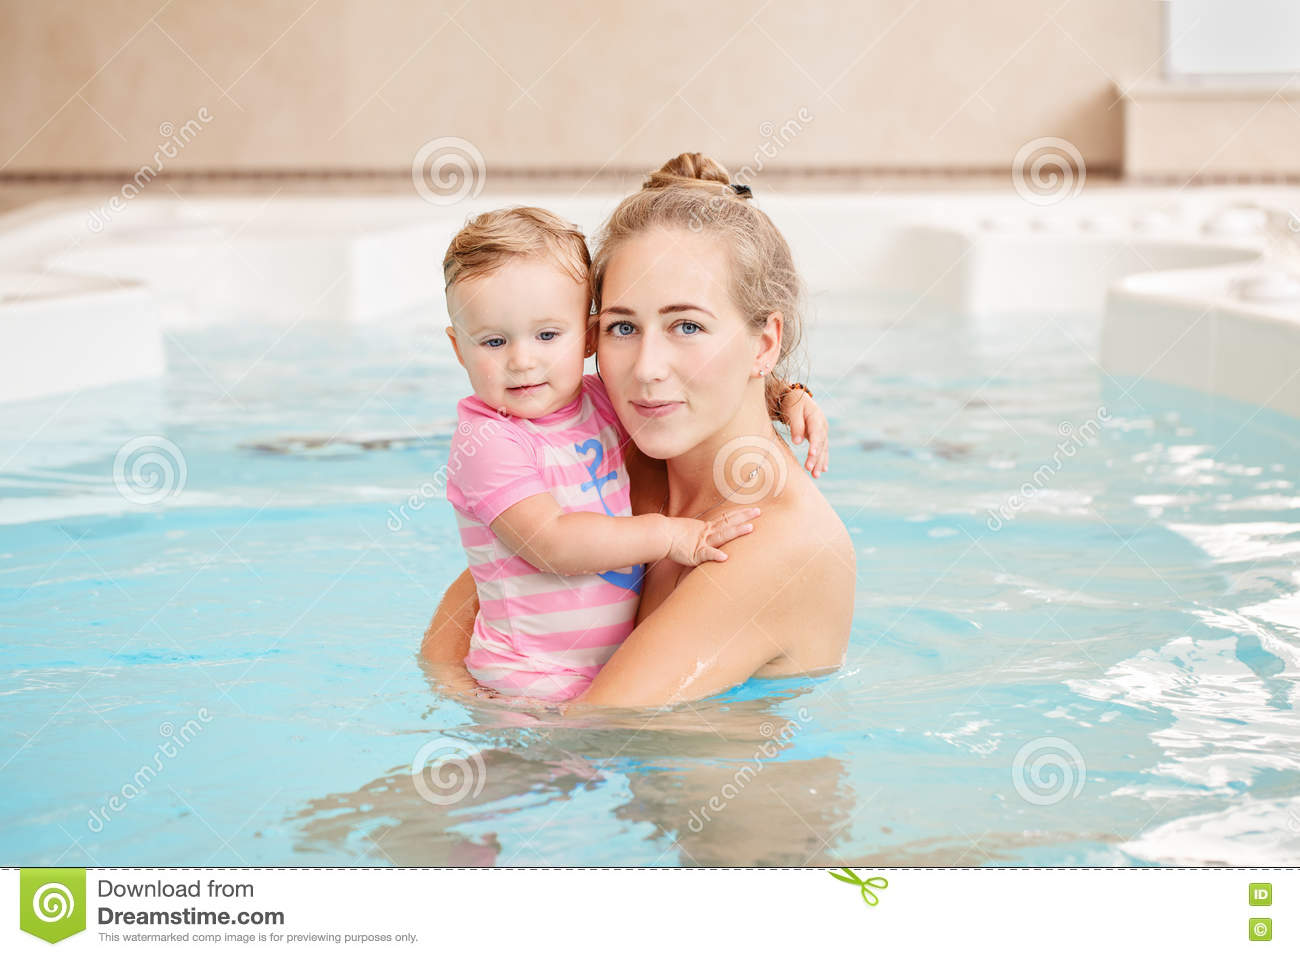 Group portrait of white Caucasian mother and baby daughter playing in water in swimming pool